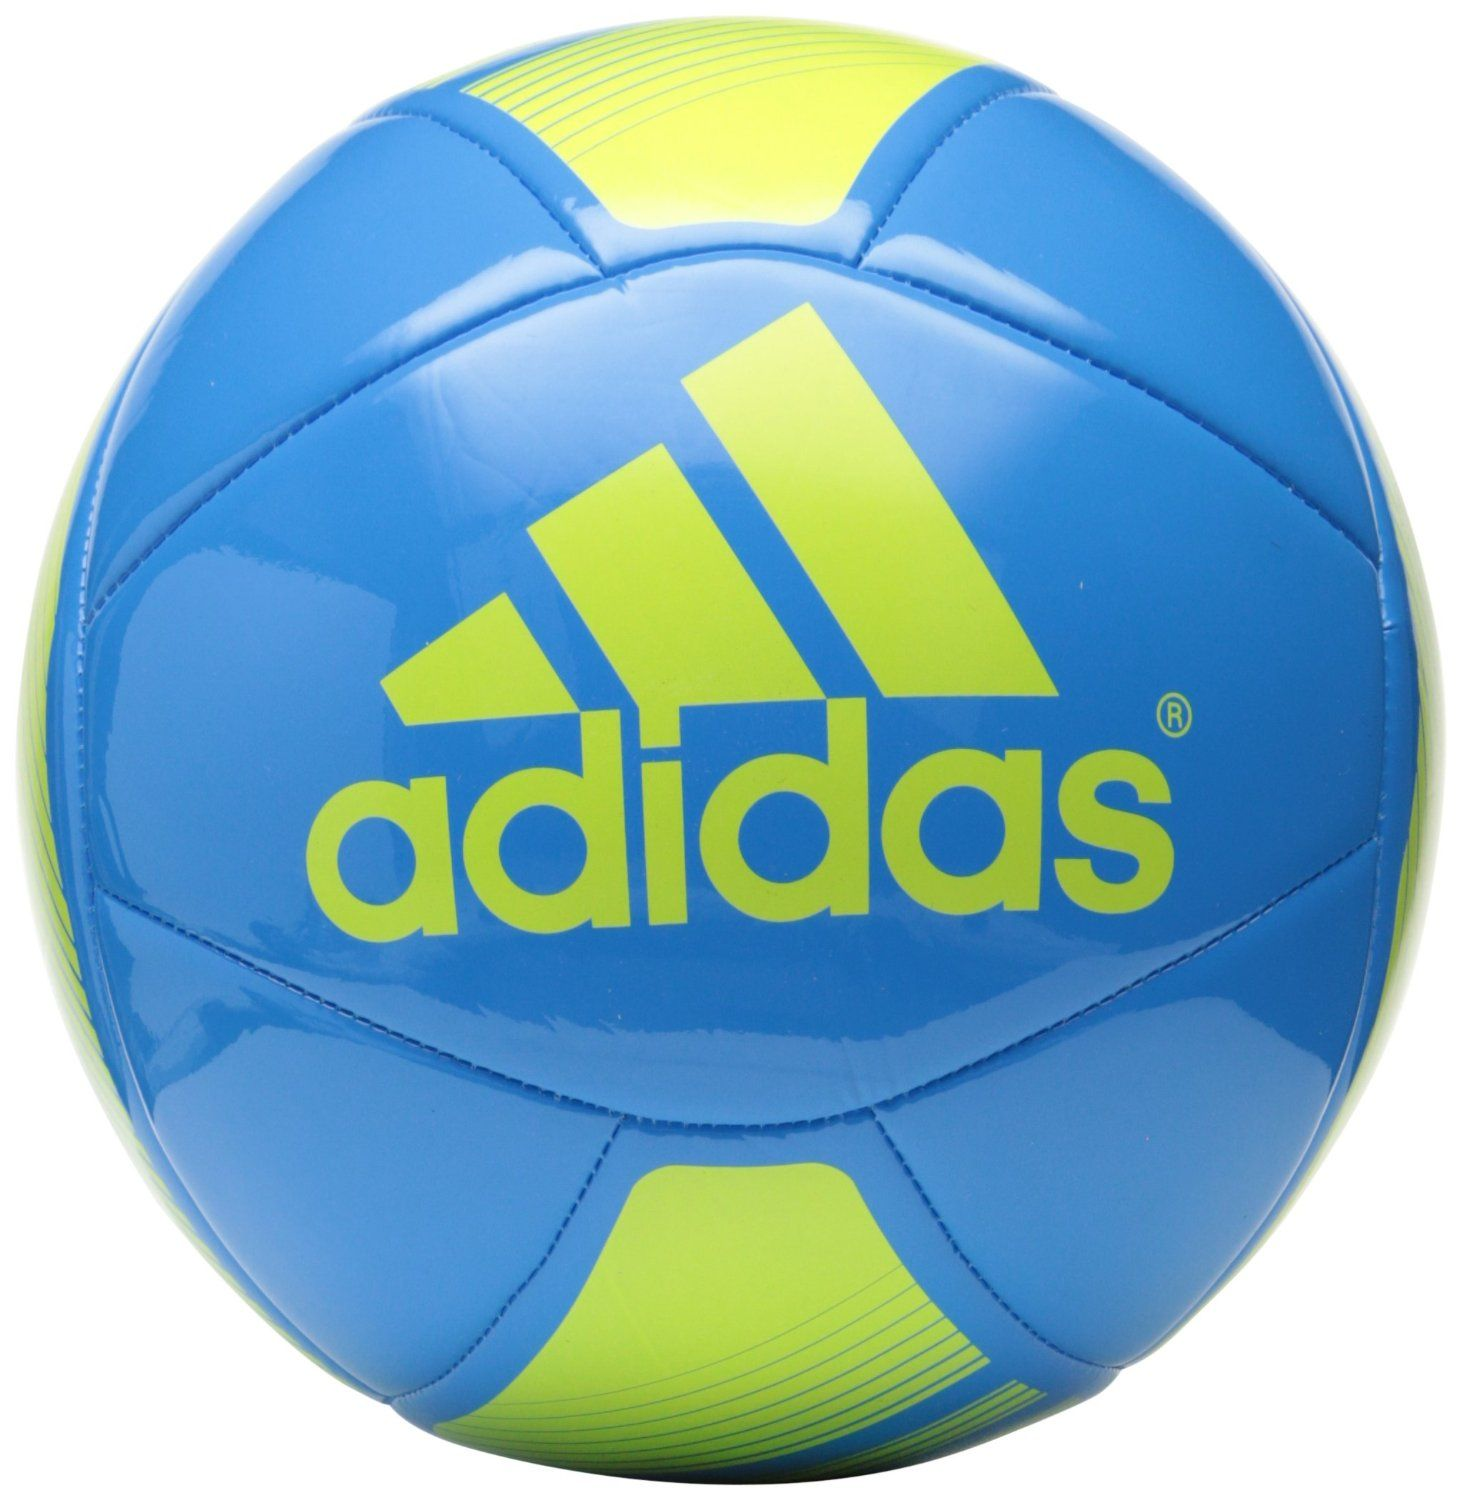 adidas soccer ball size 4